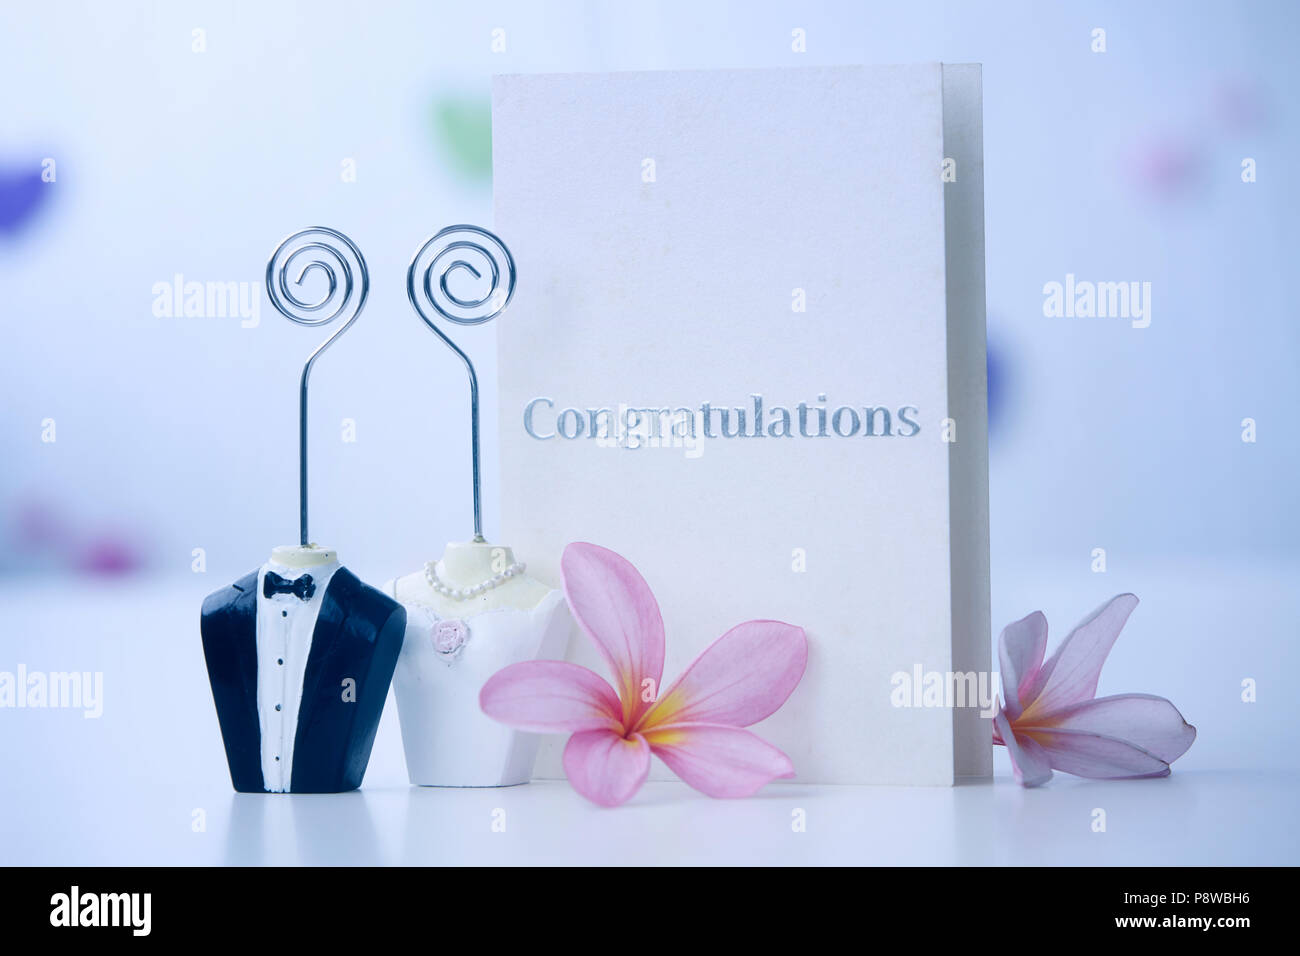 Bride and groom figure card holder with congratulations greeting bride and groom figure card holder with congratulations greeting card m4hsunfo